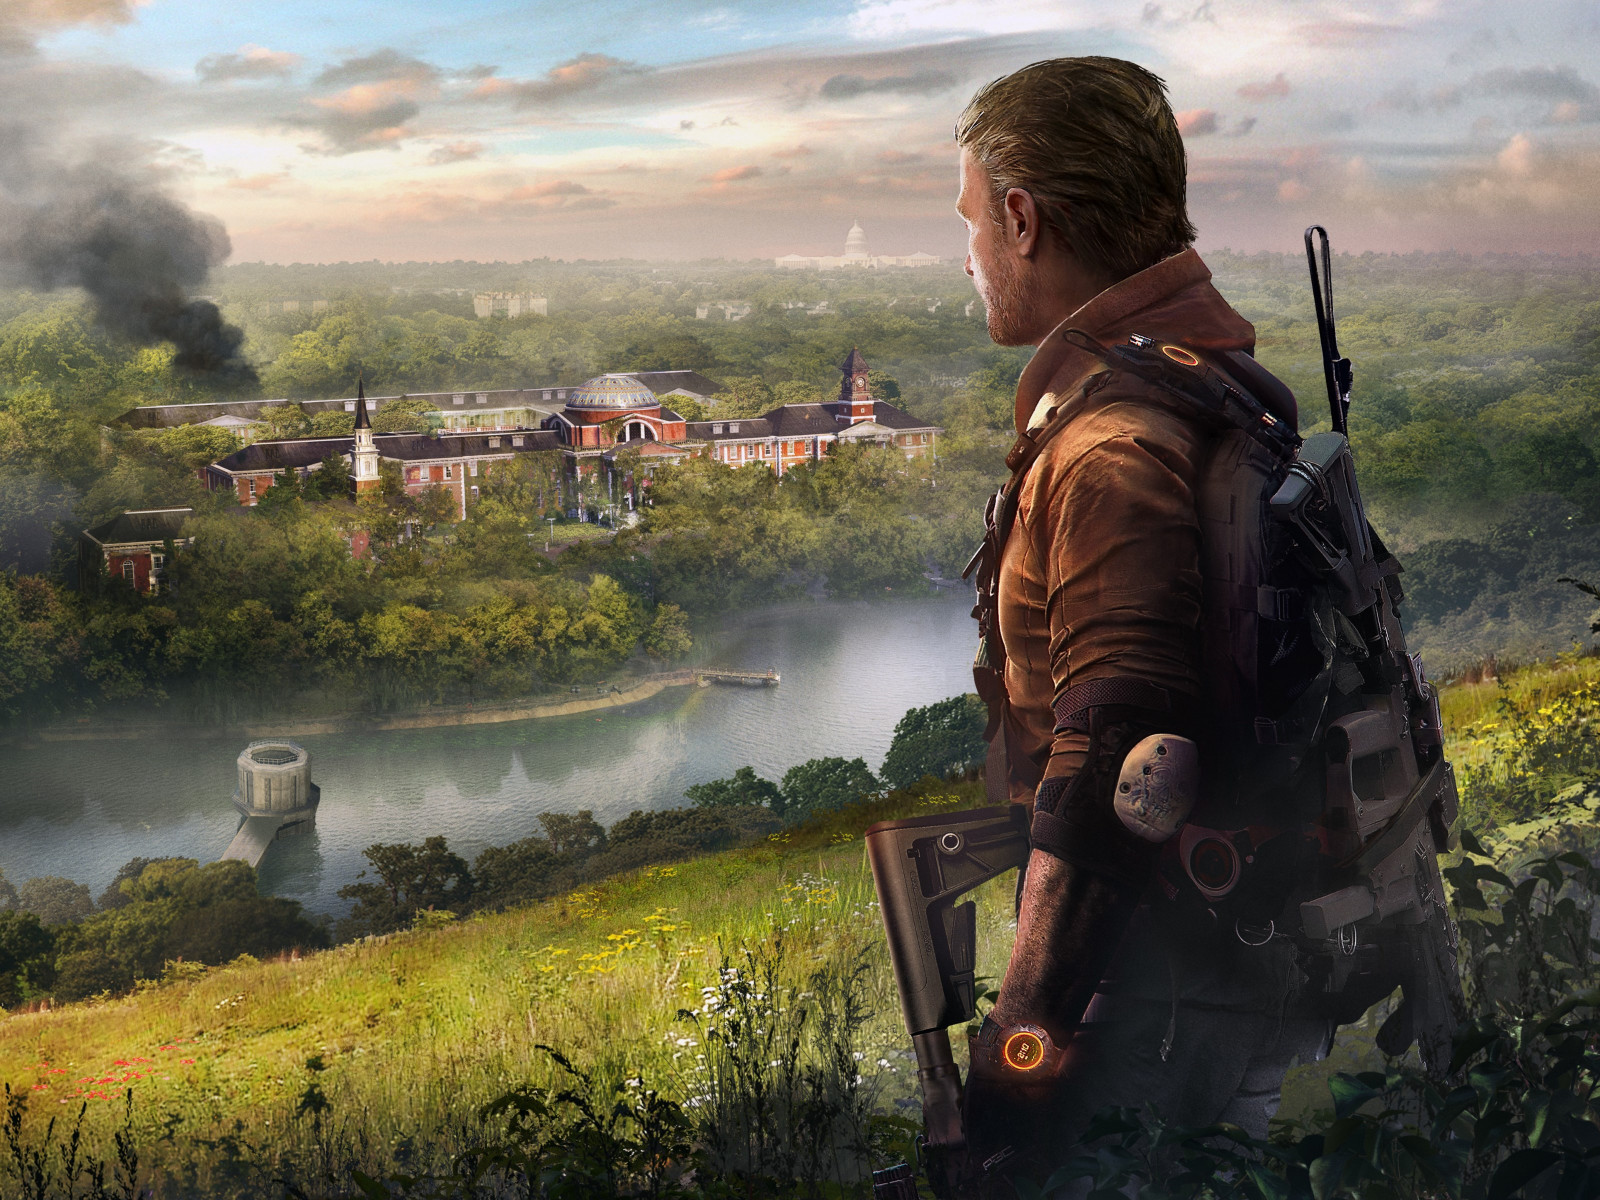 Tom Clancy's The Division 2 Episodes wallpaper 1600x1200